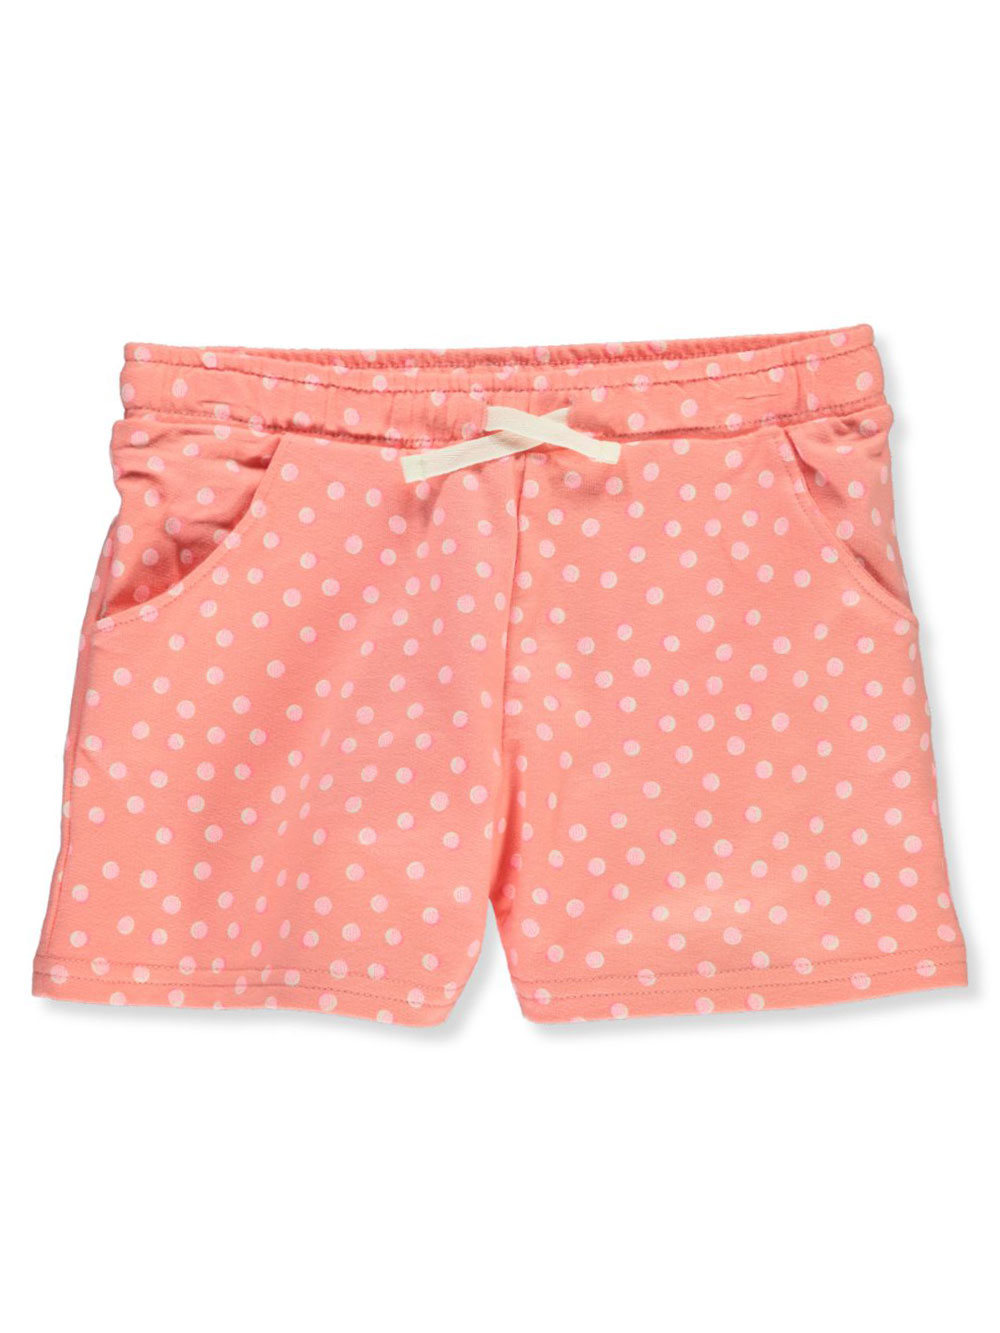 Girls' Polka Dot Terry Shorts